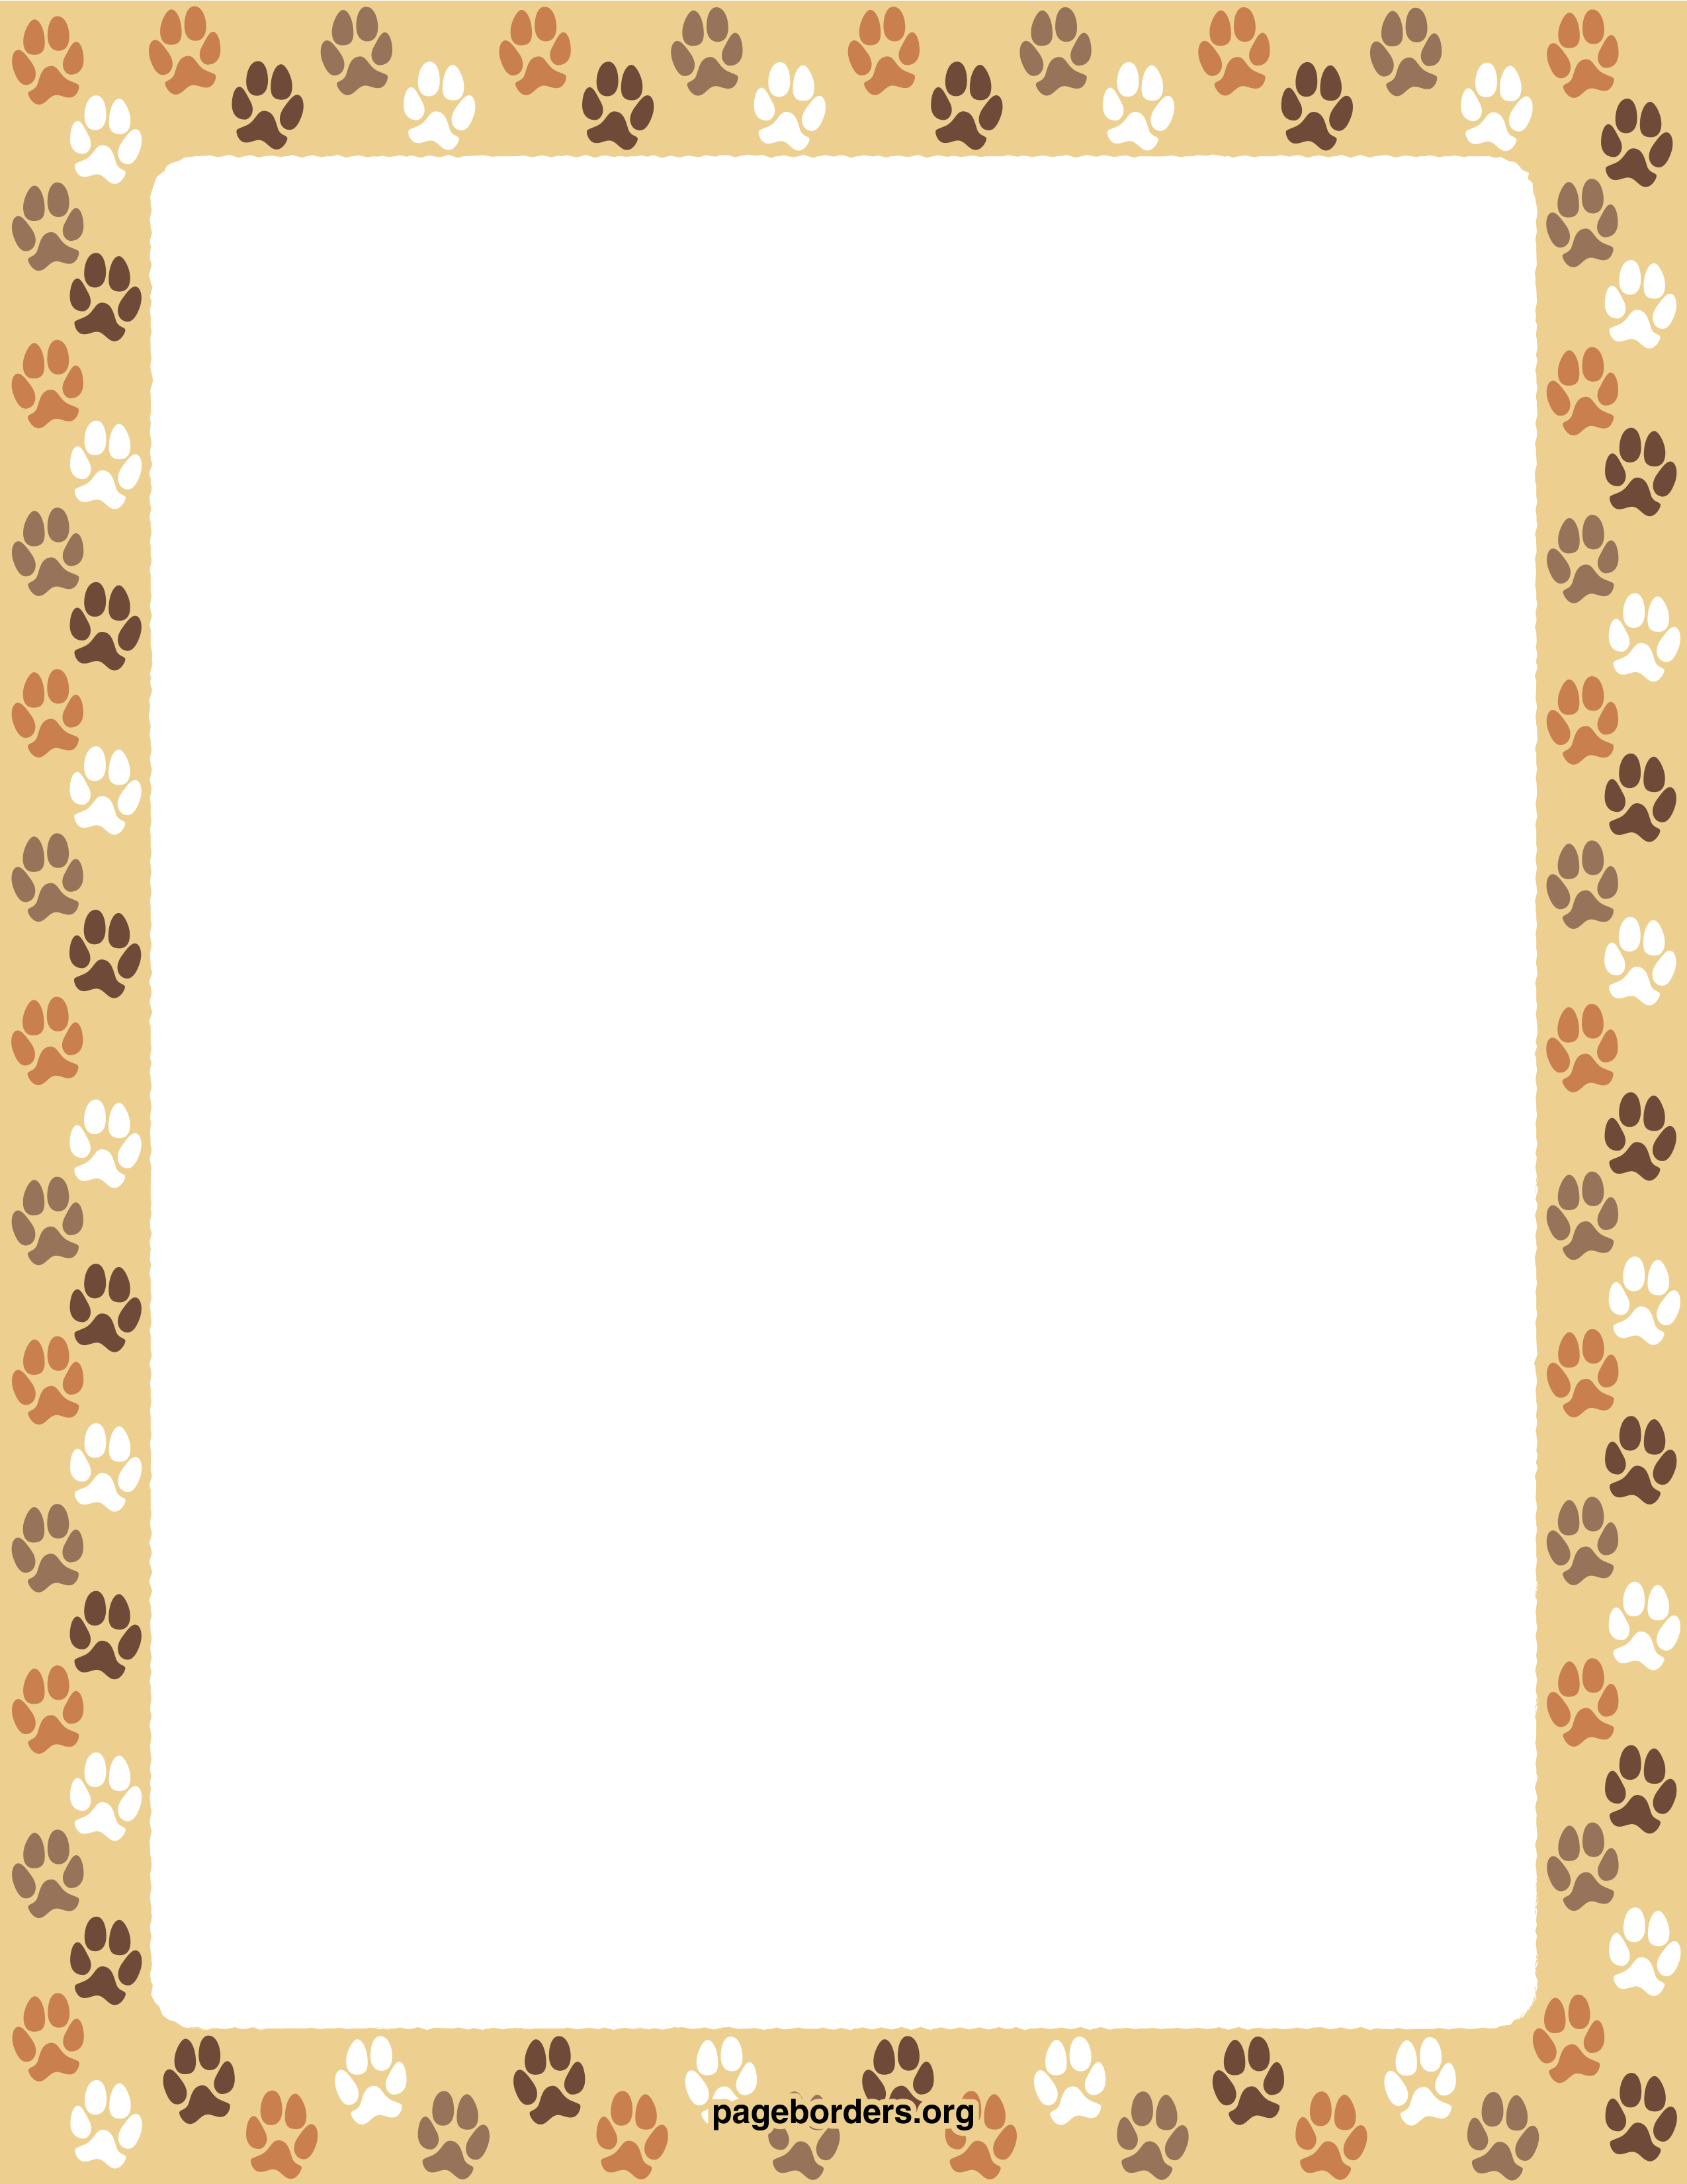 Dog borders and frames - photo#7